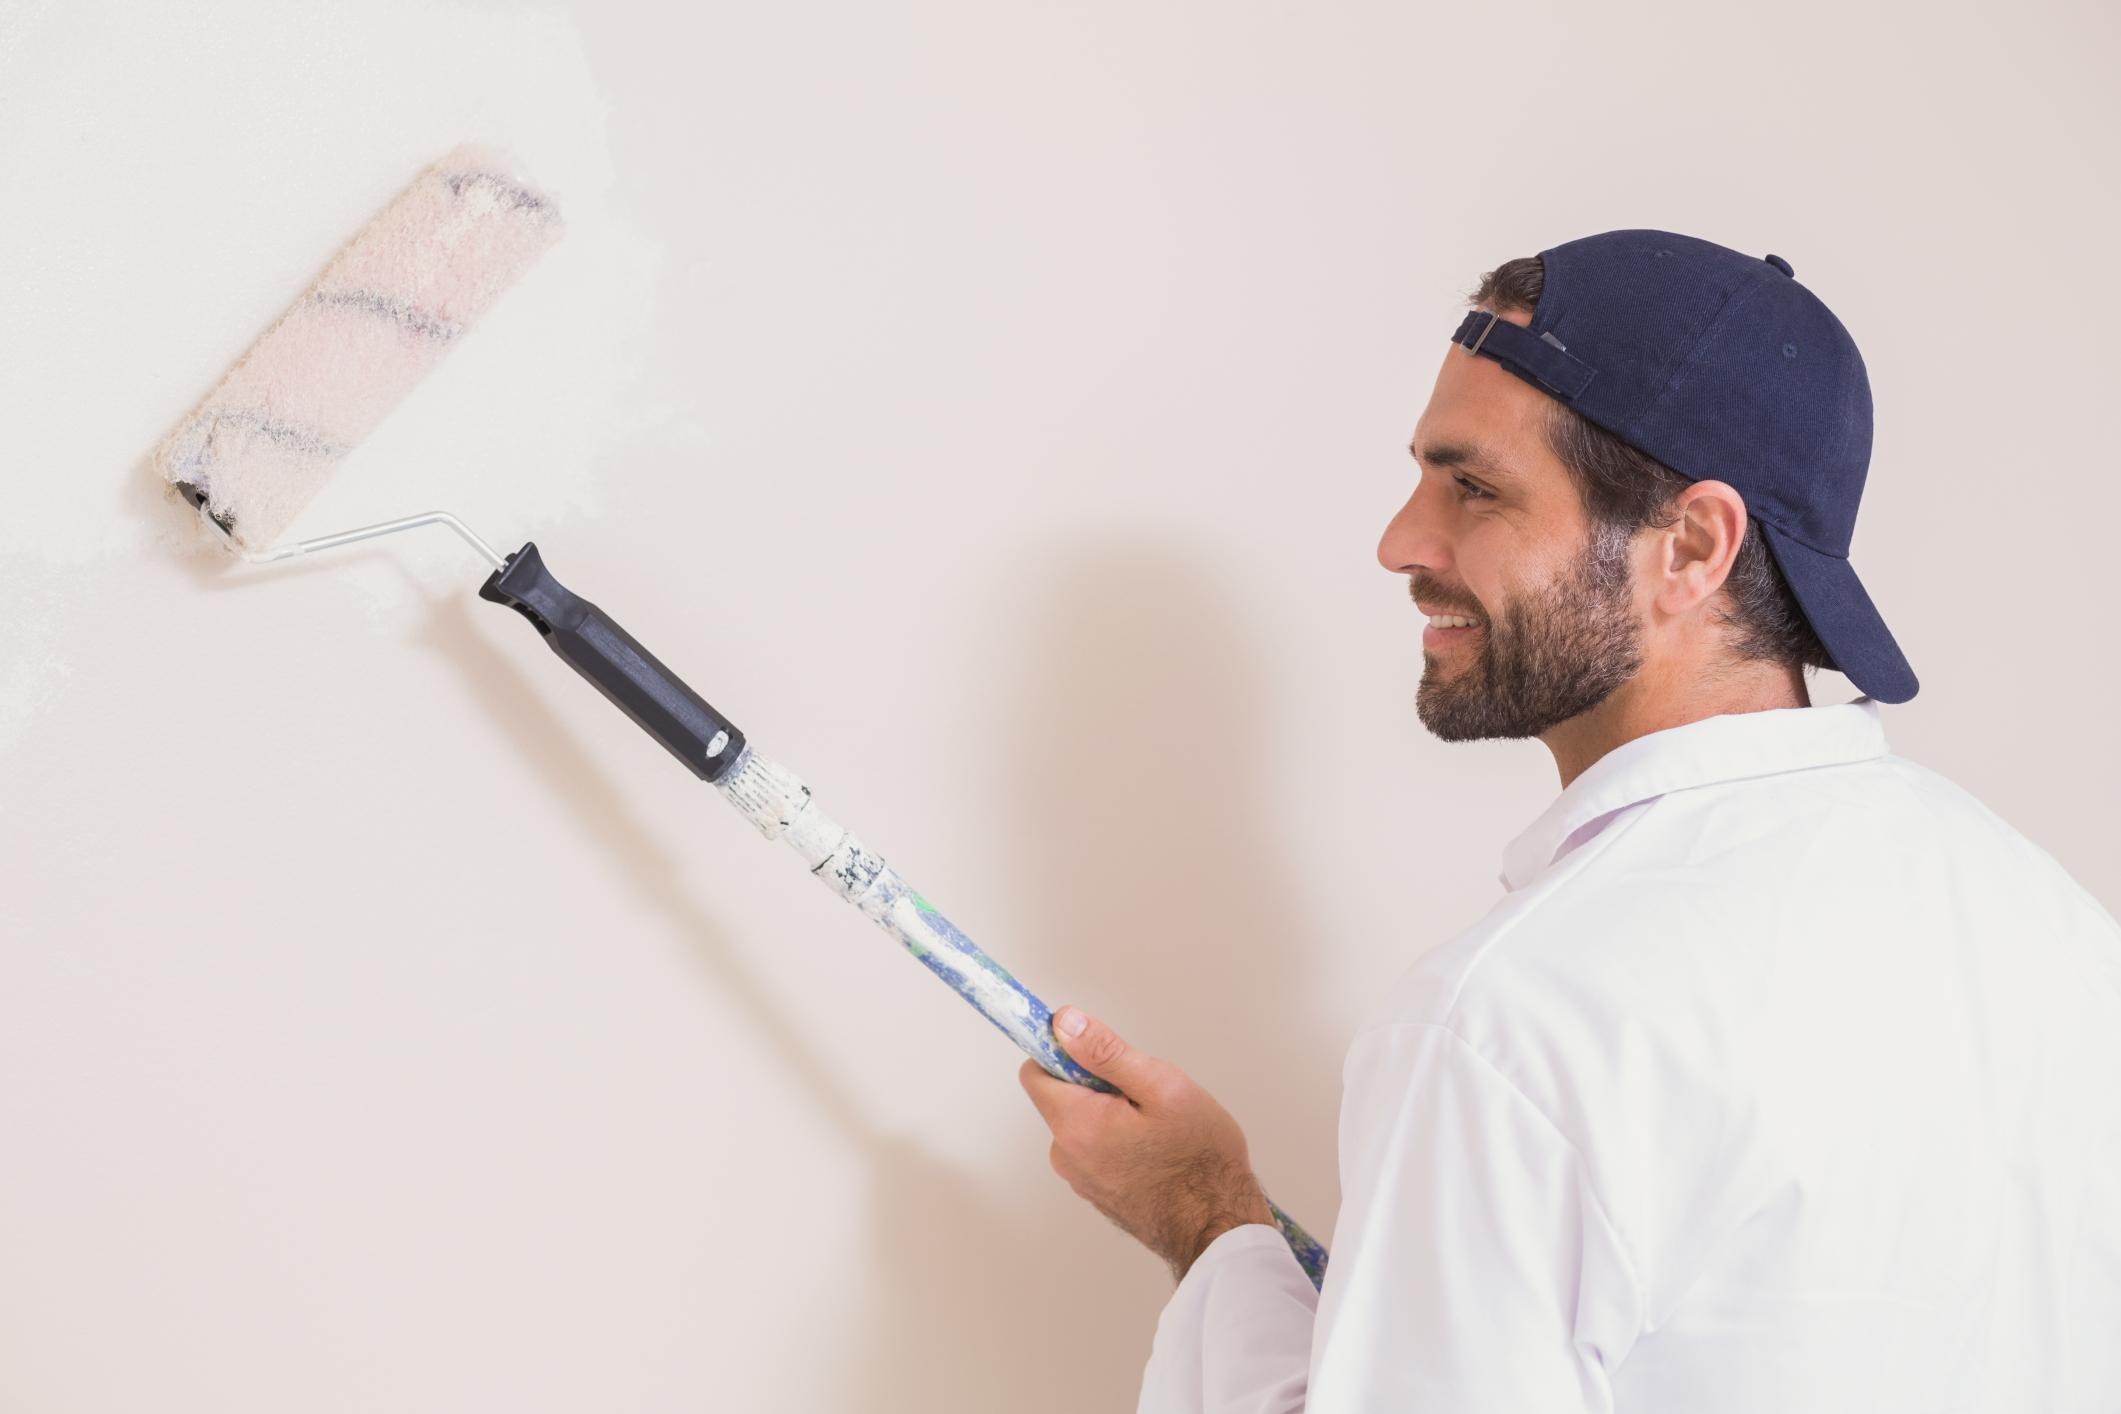 man happily painting the wall